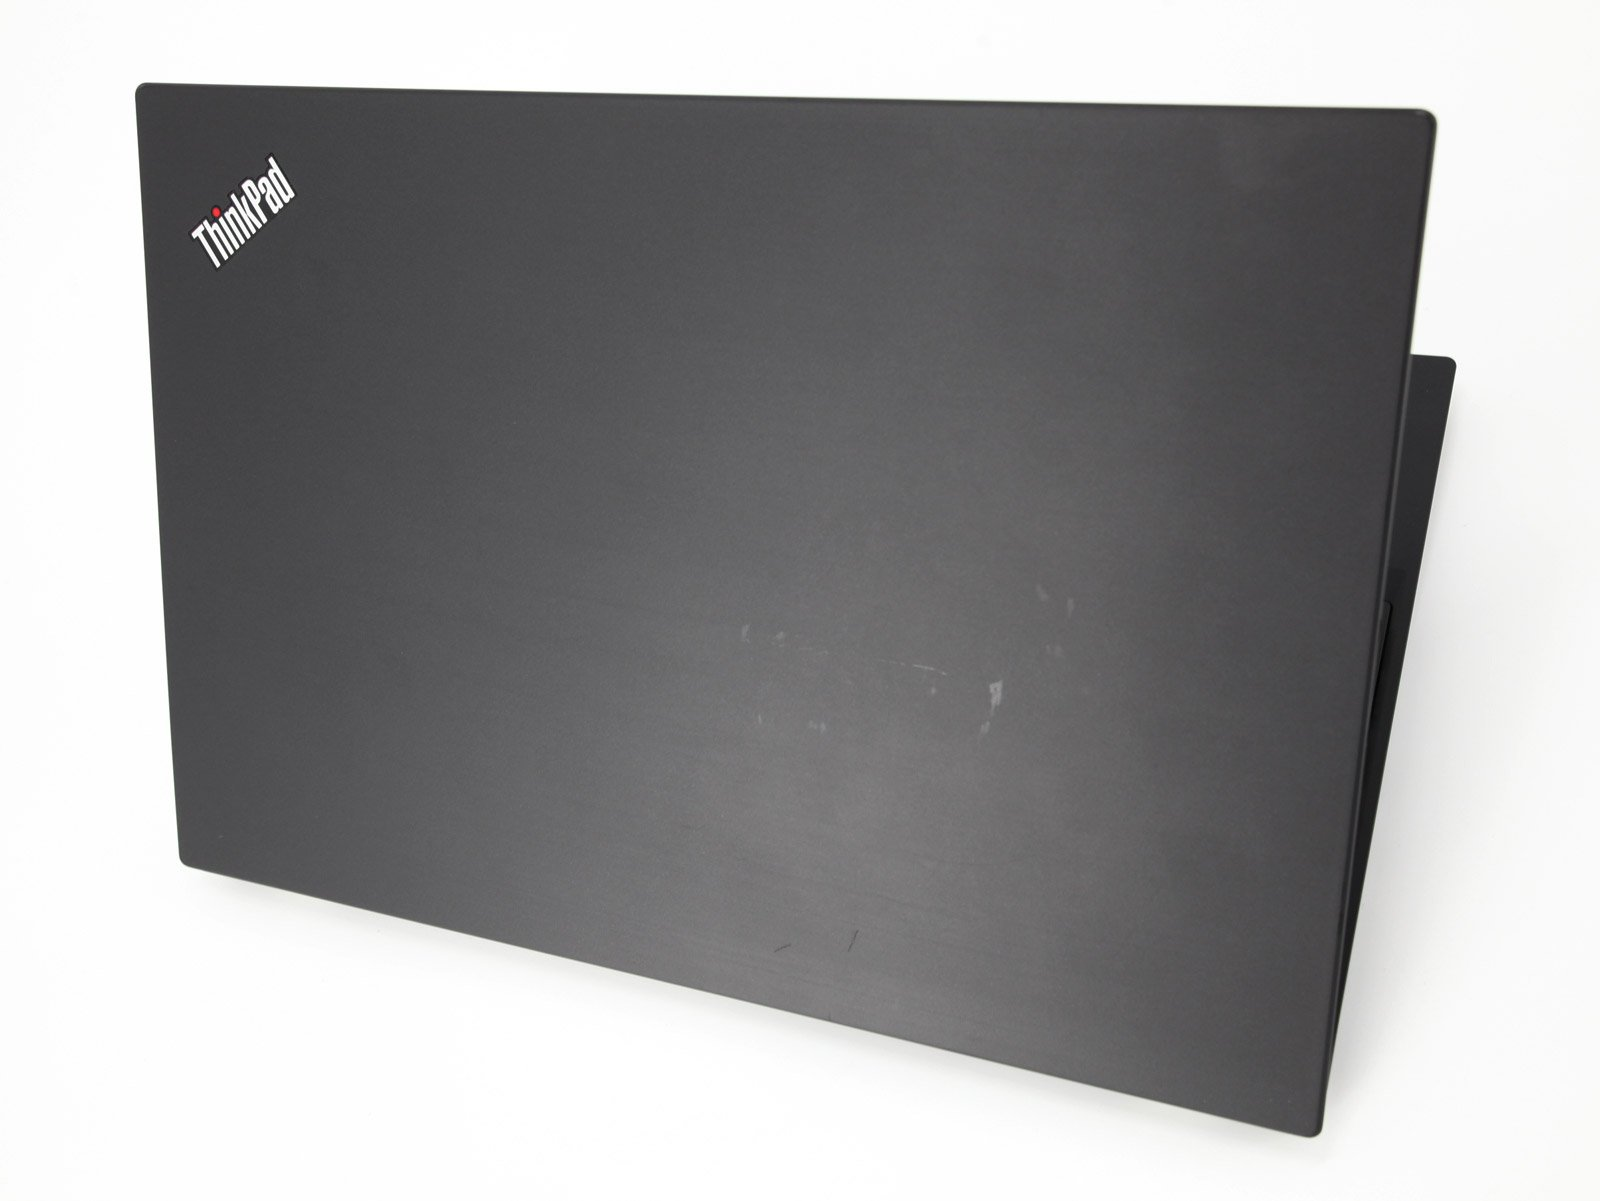 Lenovo ThinkPad P53s Laptop: Core i7-8665U, 16GB RAM, 512GB, Quadro P520 - CruiseTech